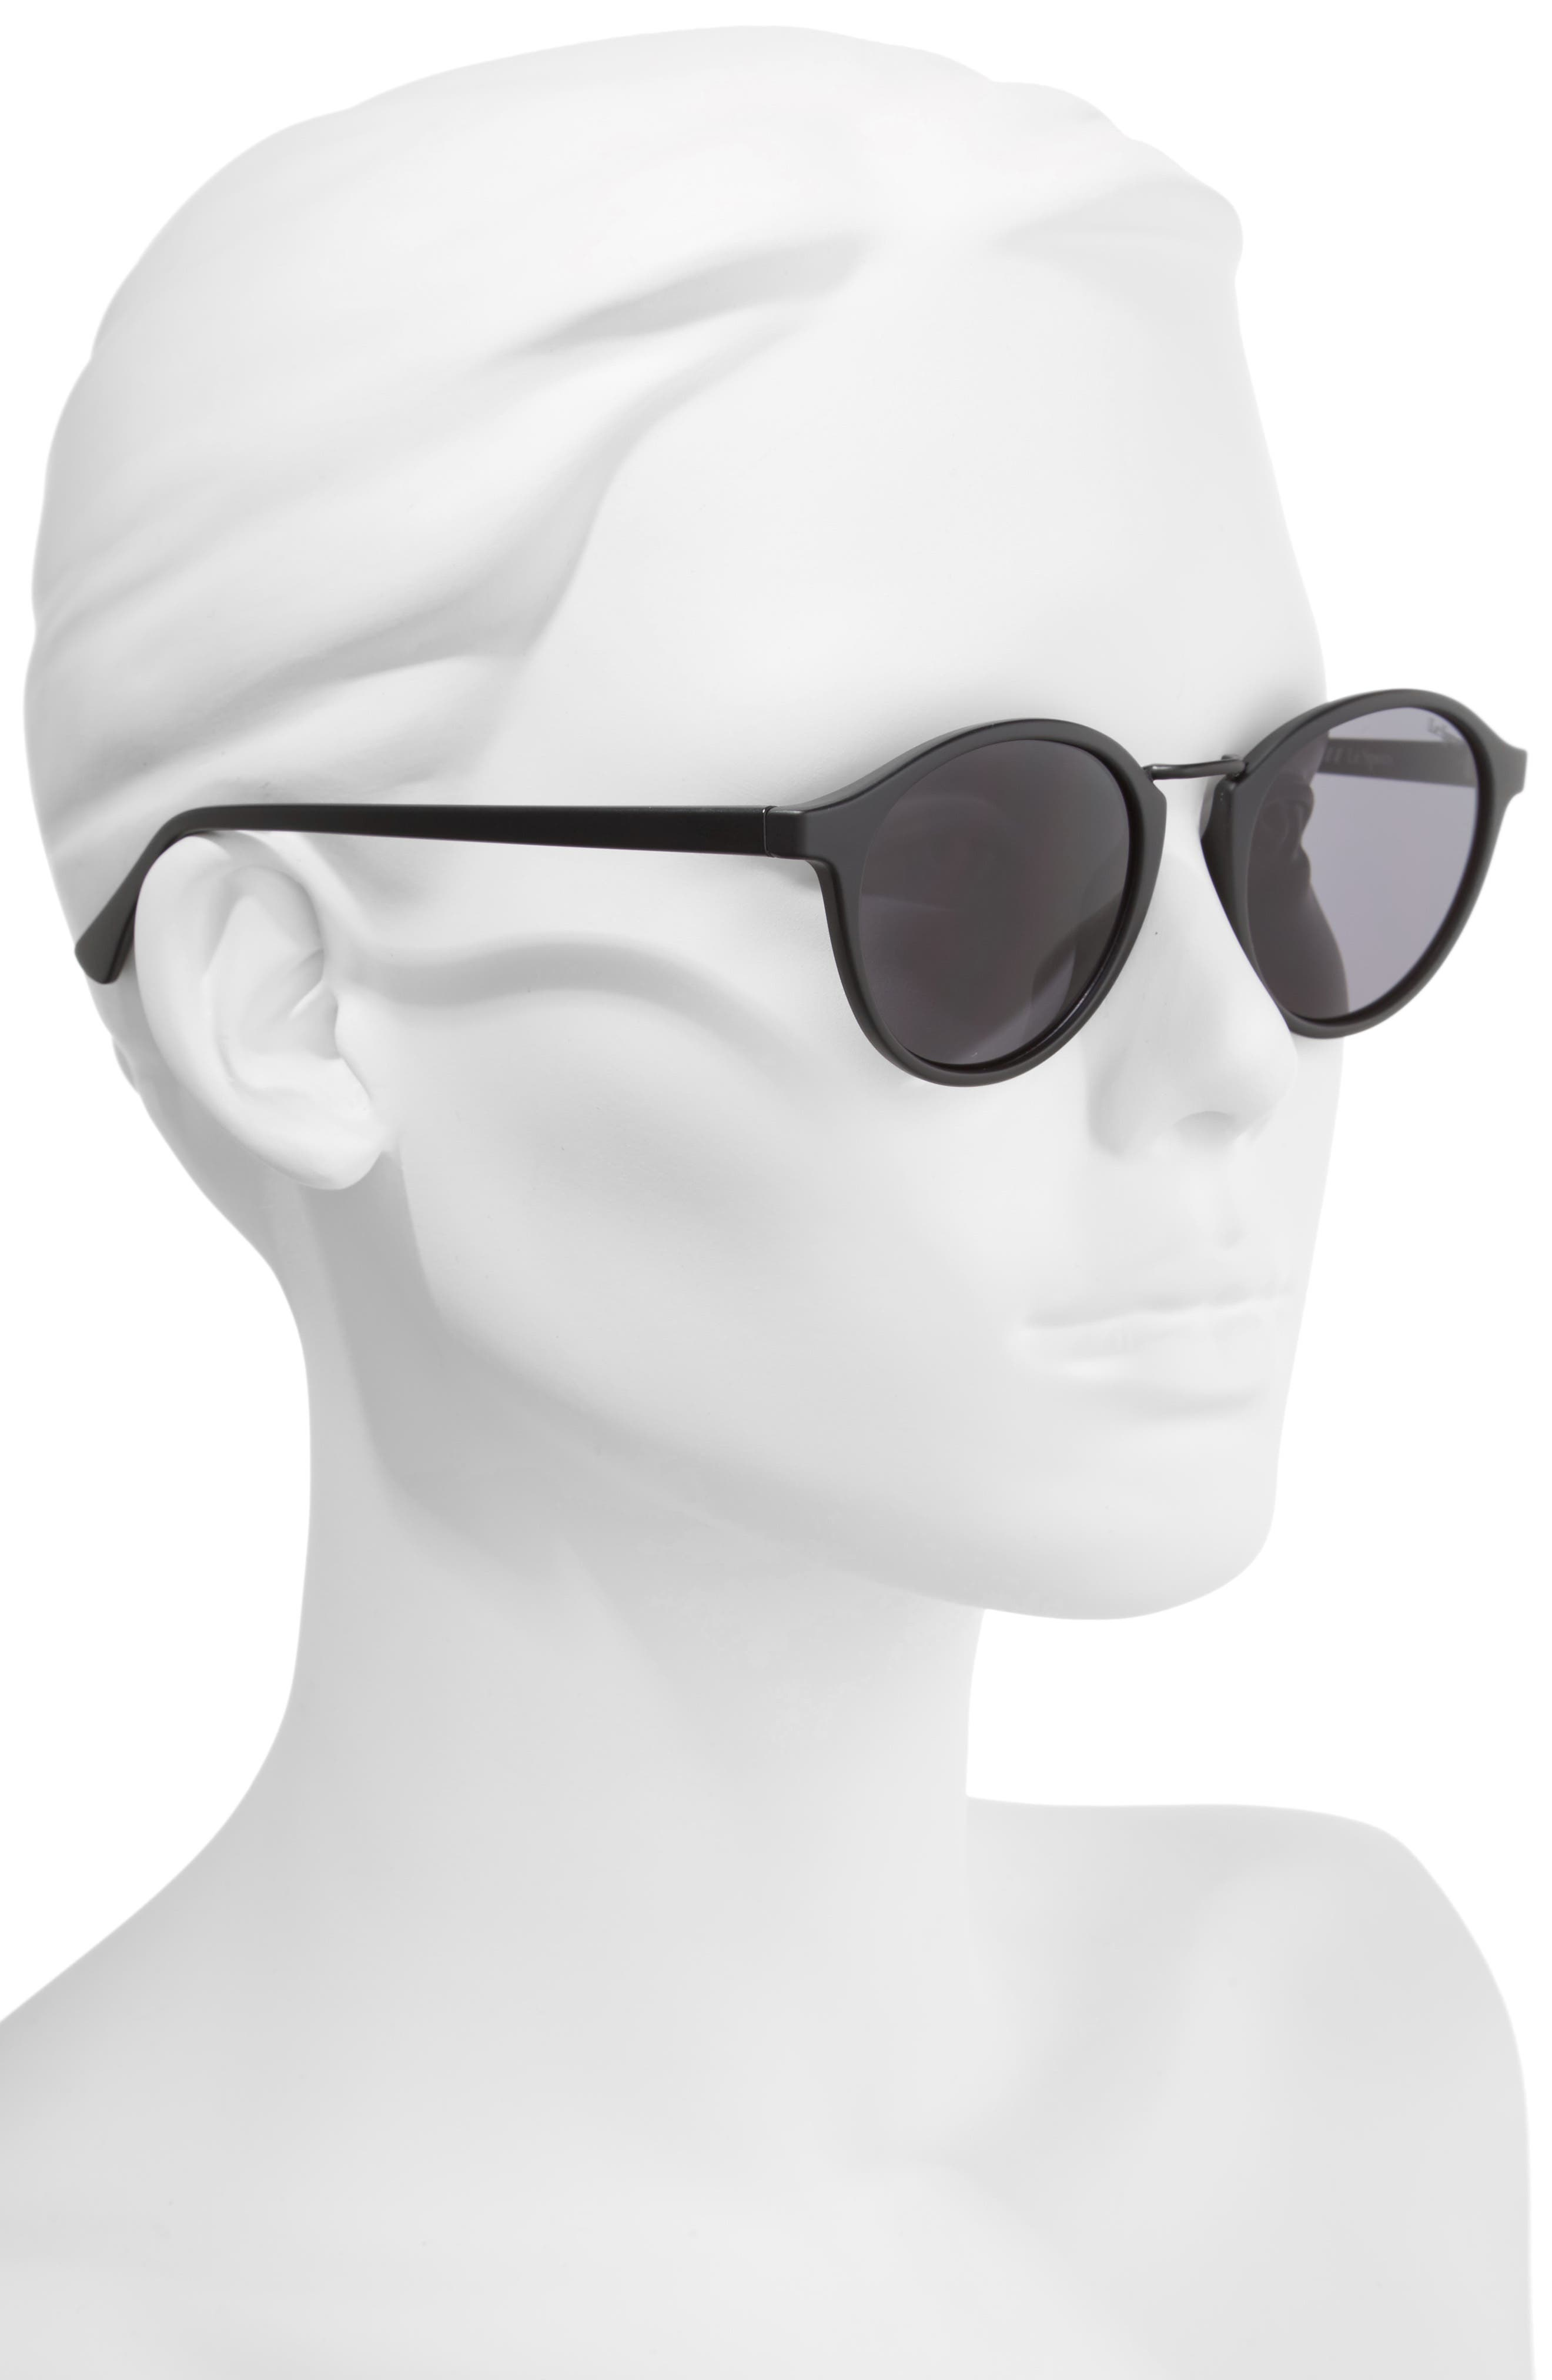 Paradox 49mm Oval Sunglasses,                             Alternate thumbnail 2, color,                             001